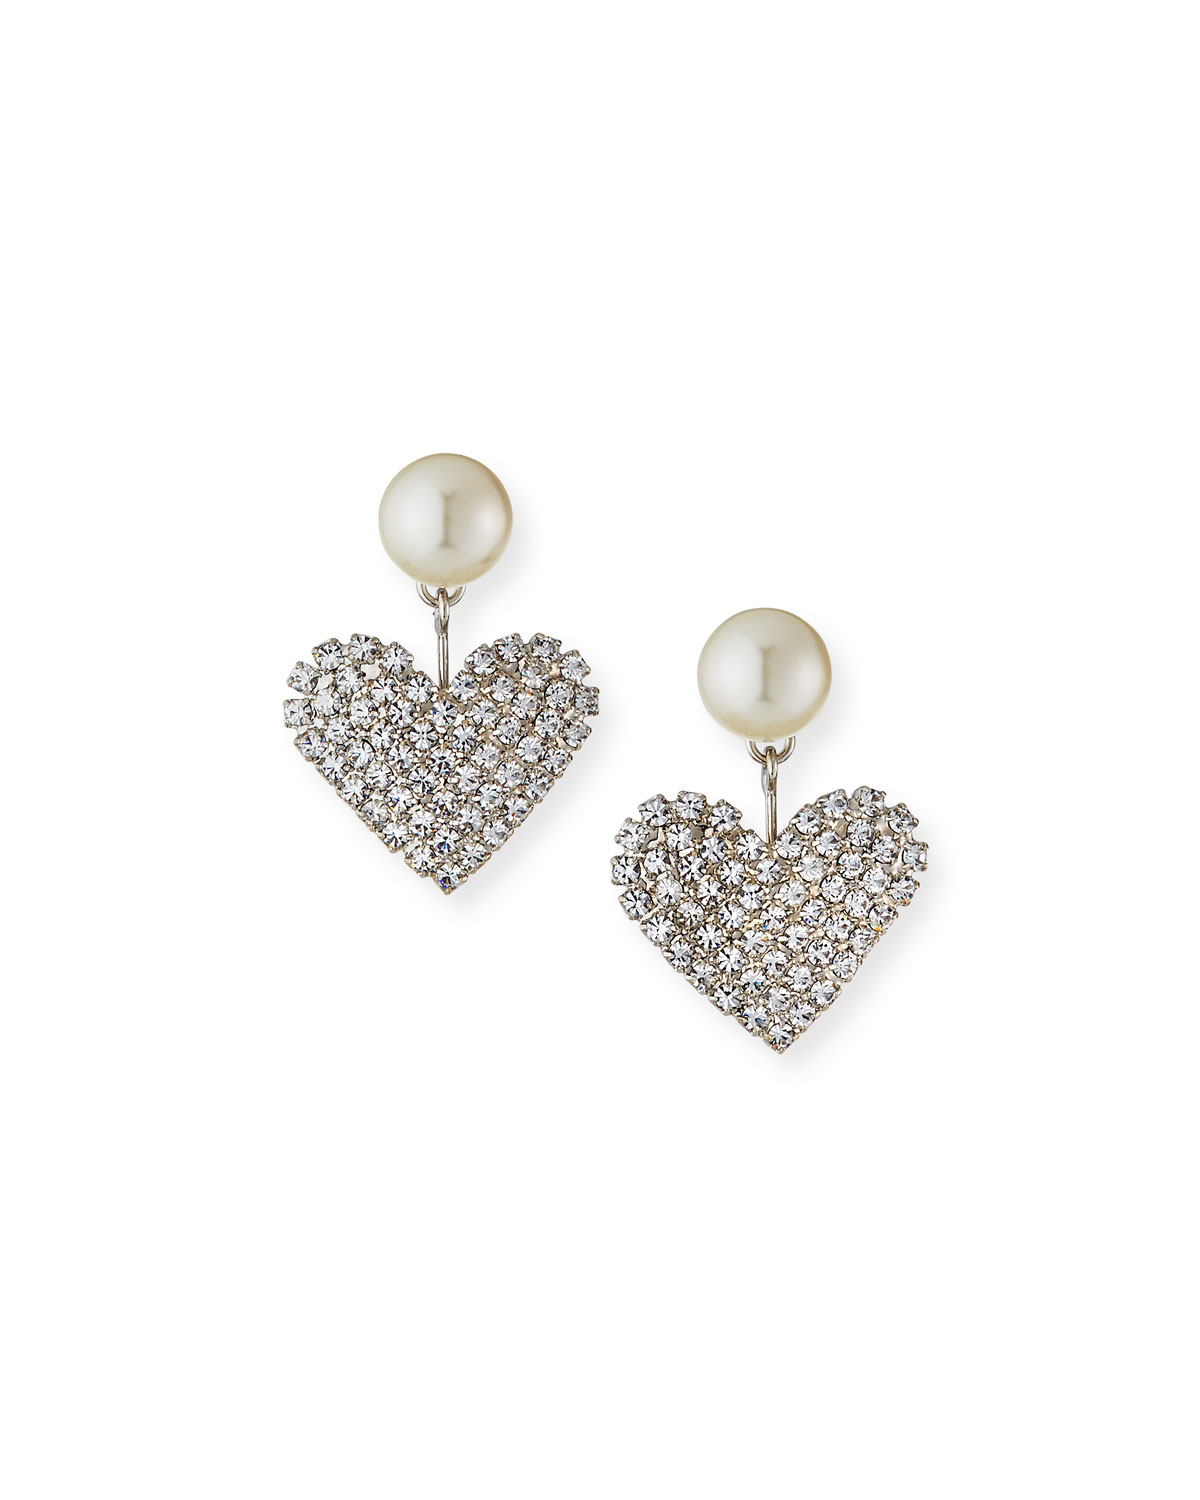 Jennifer Behr Accessories VALENTINE PEARLY & CRYSTAL HEART EARRINGS